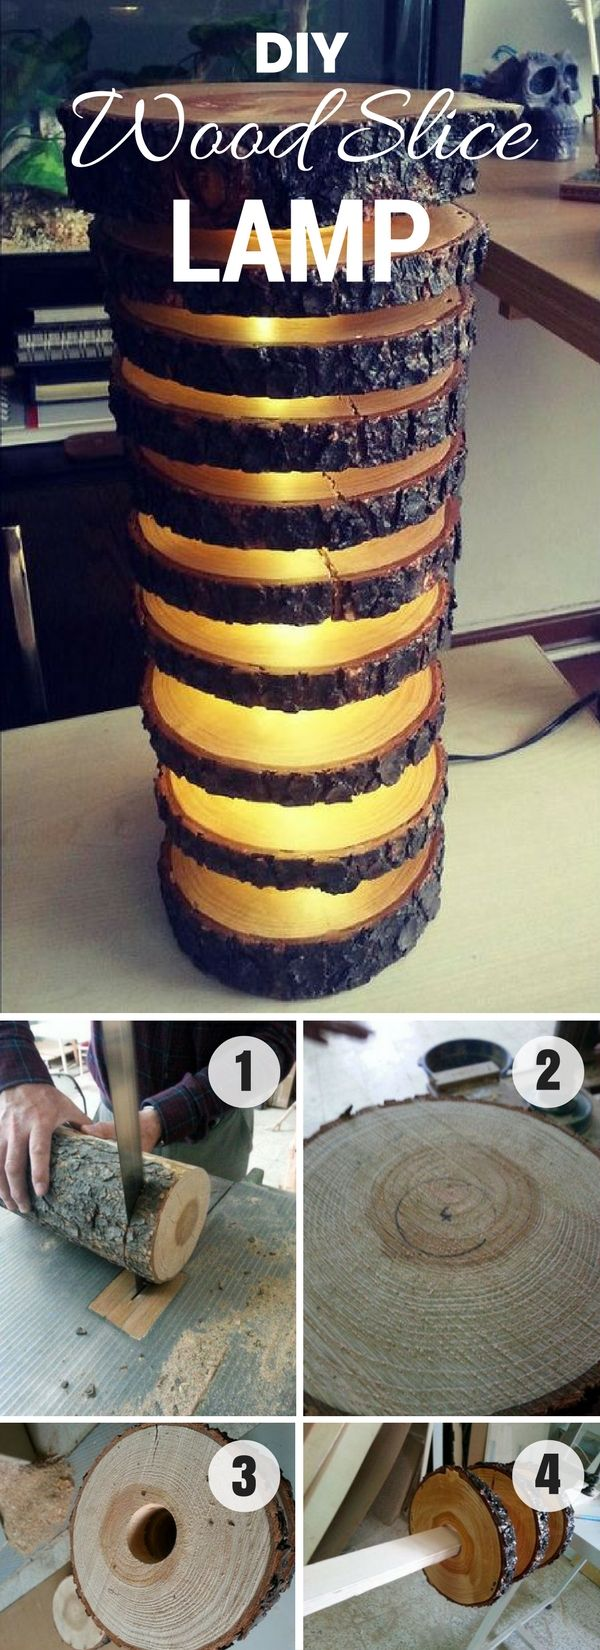 20 Amazing DIY Decoration With Wood slice 15 Lamp